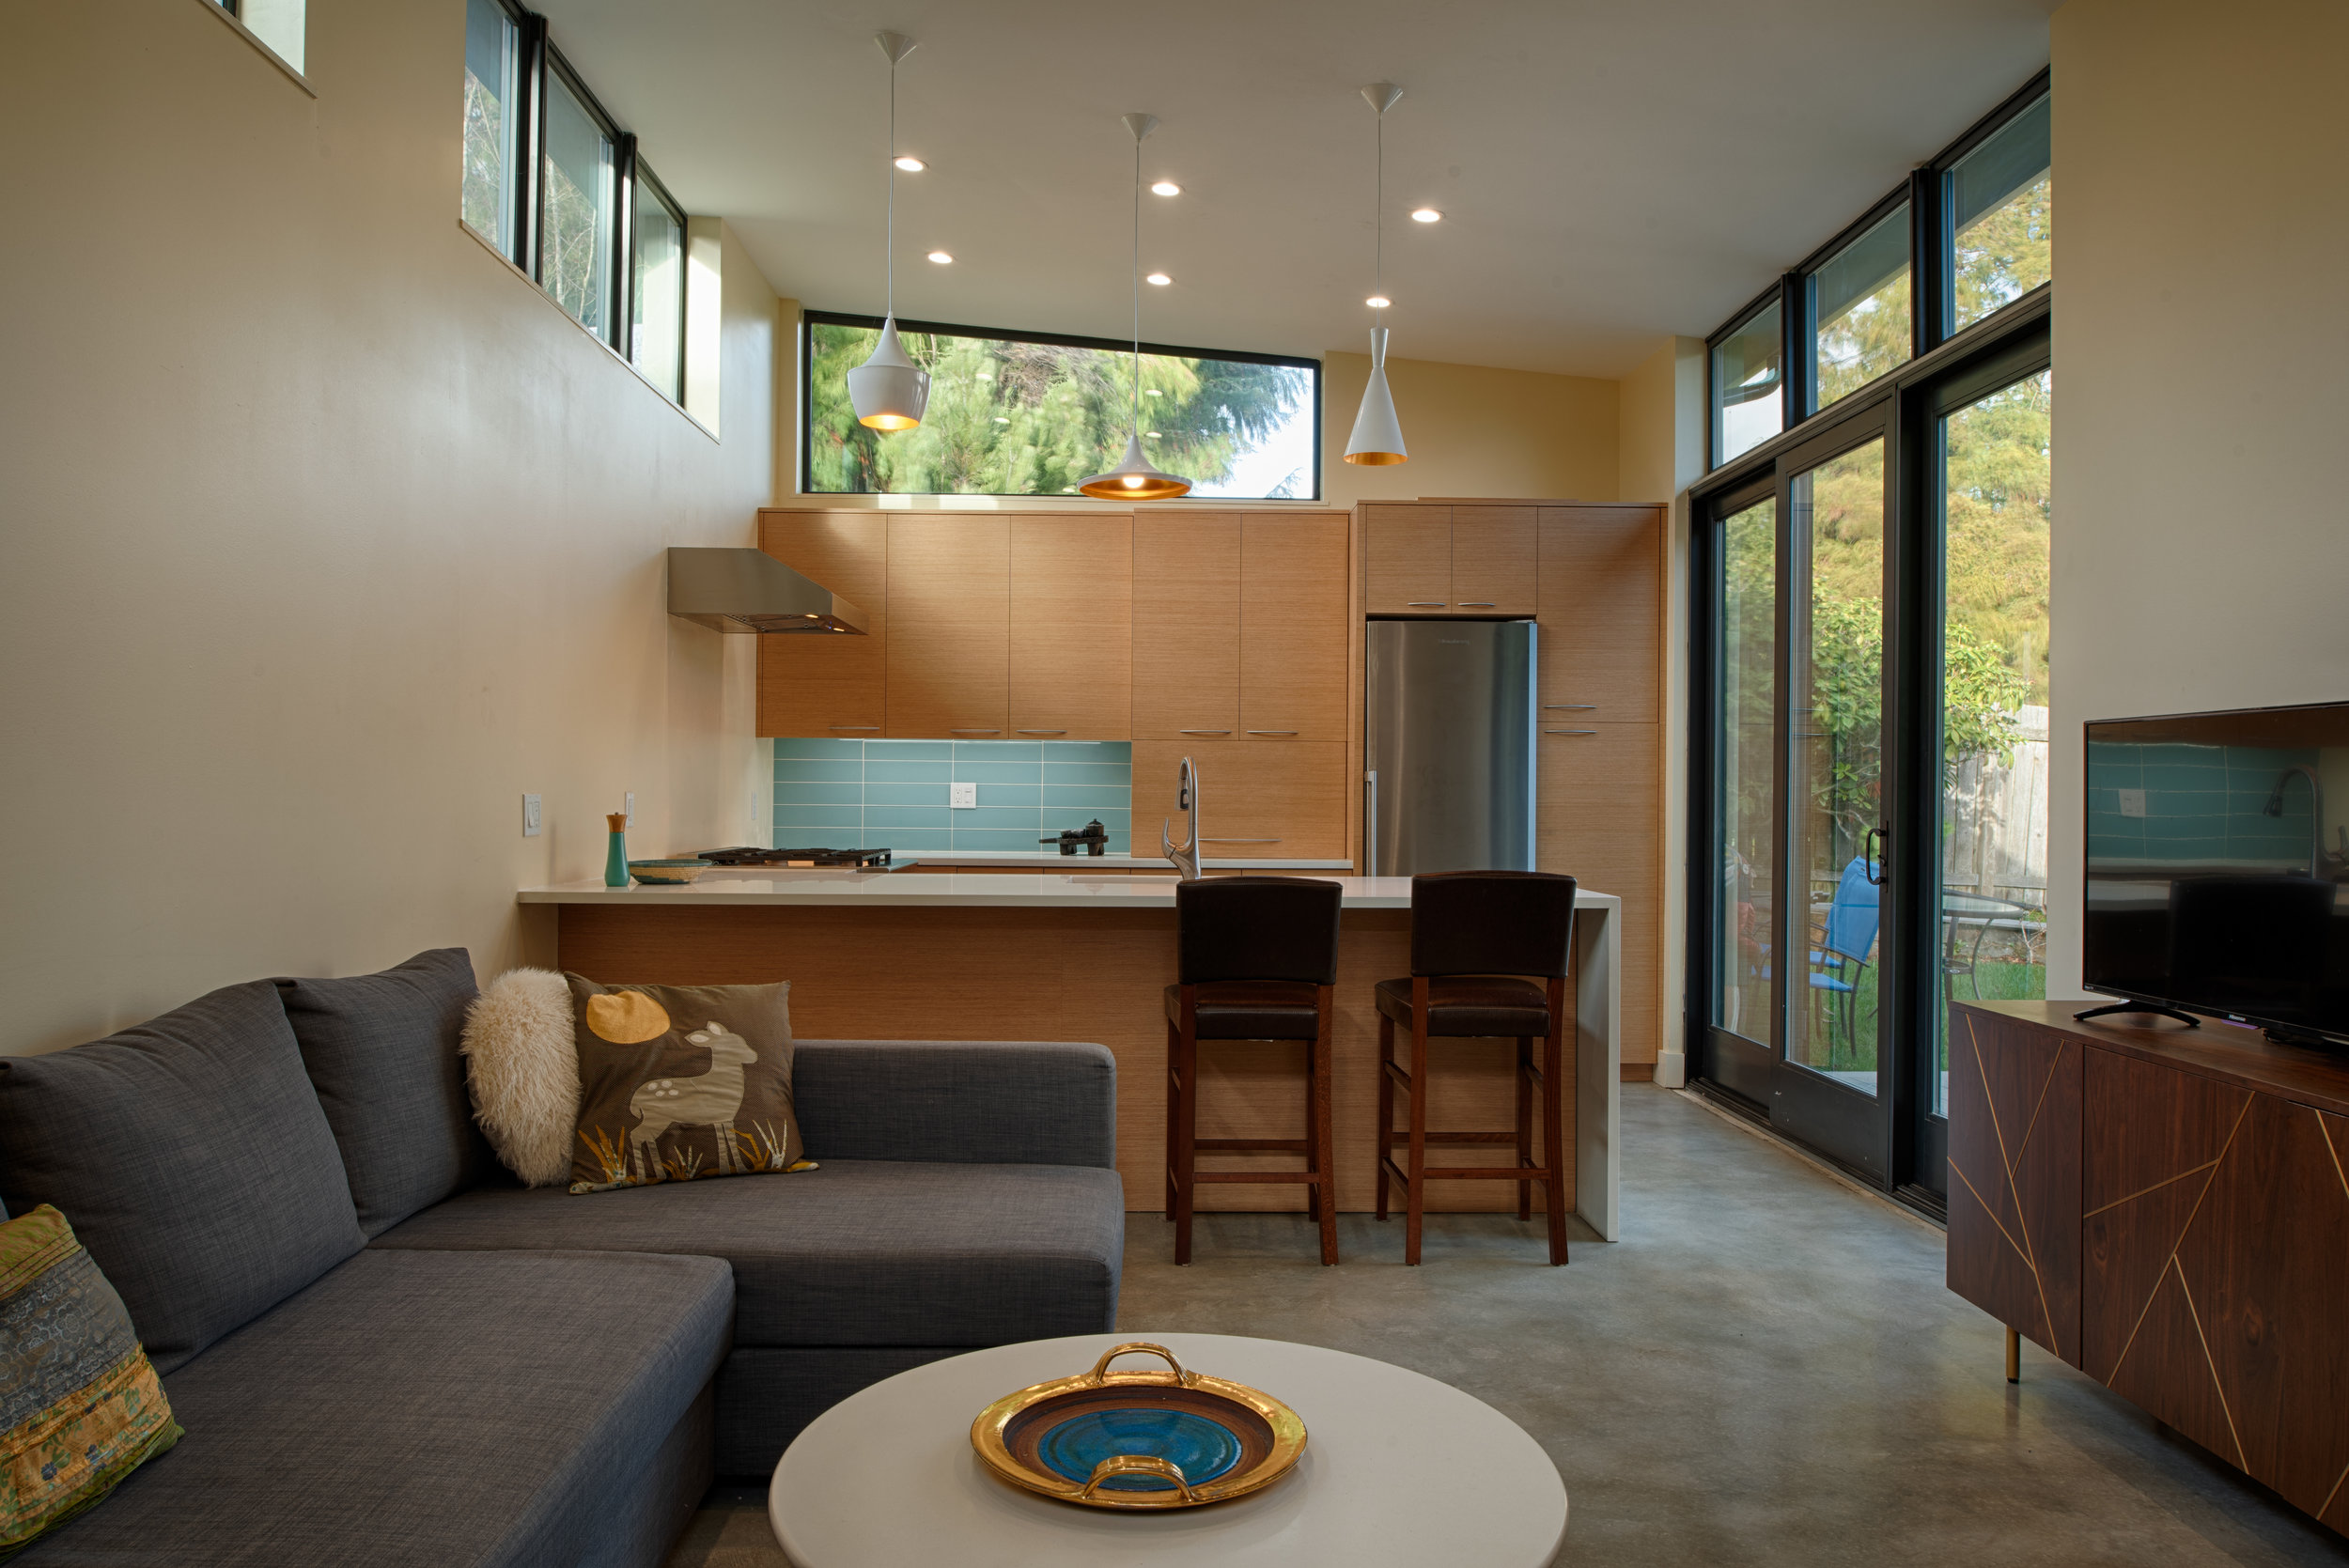 A single story detached accessory dwelling unit designed to allow a retired couple age in place while sharing a property with their children and grandchildren.